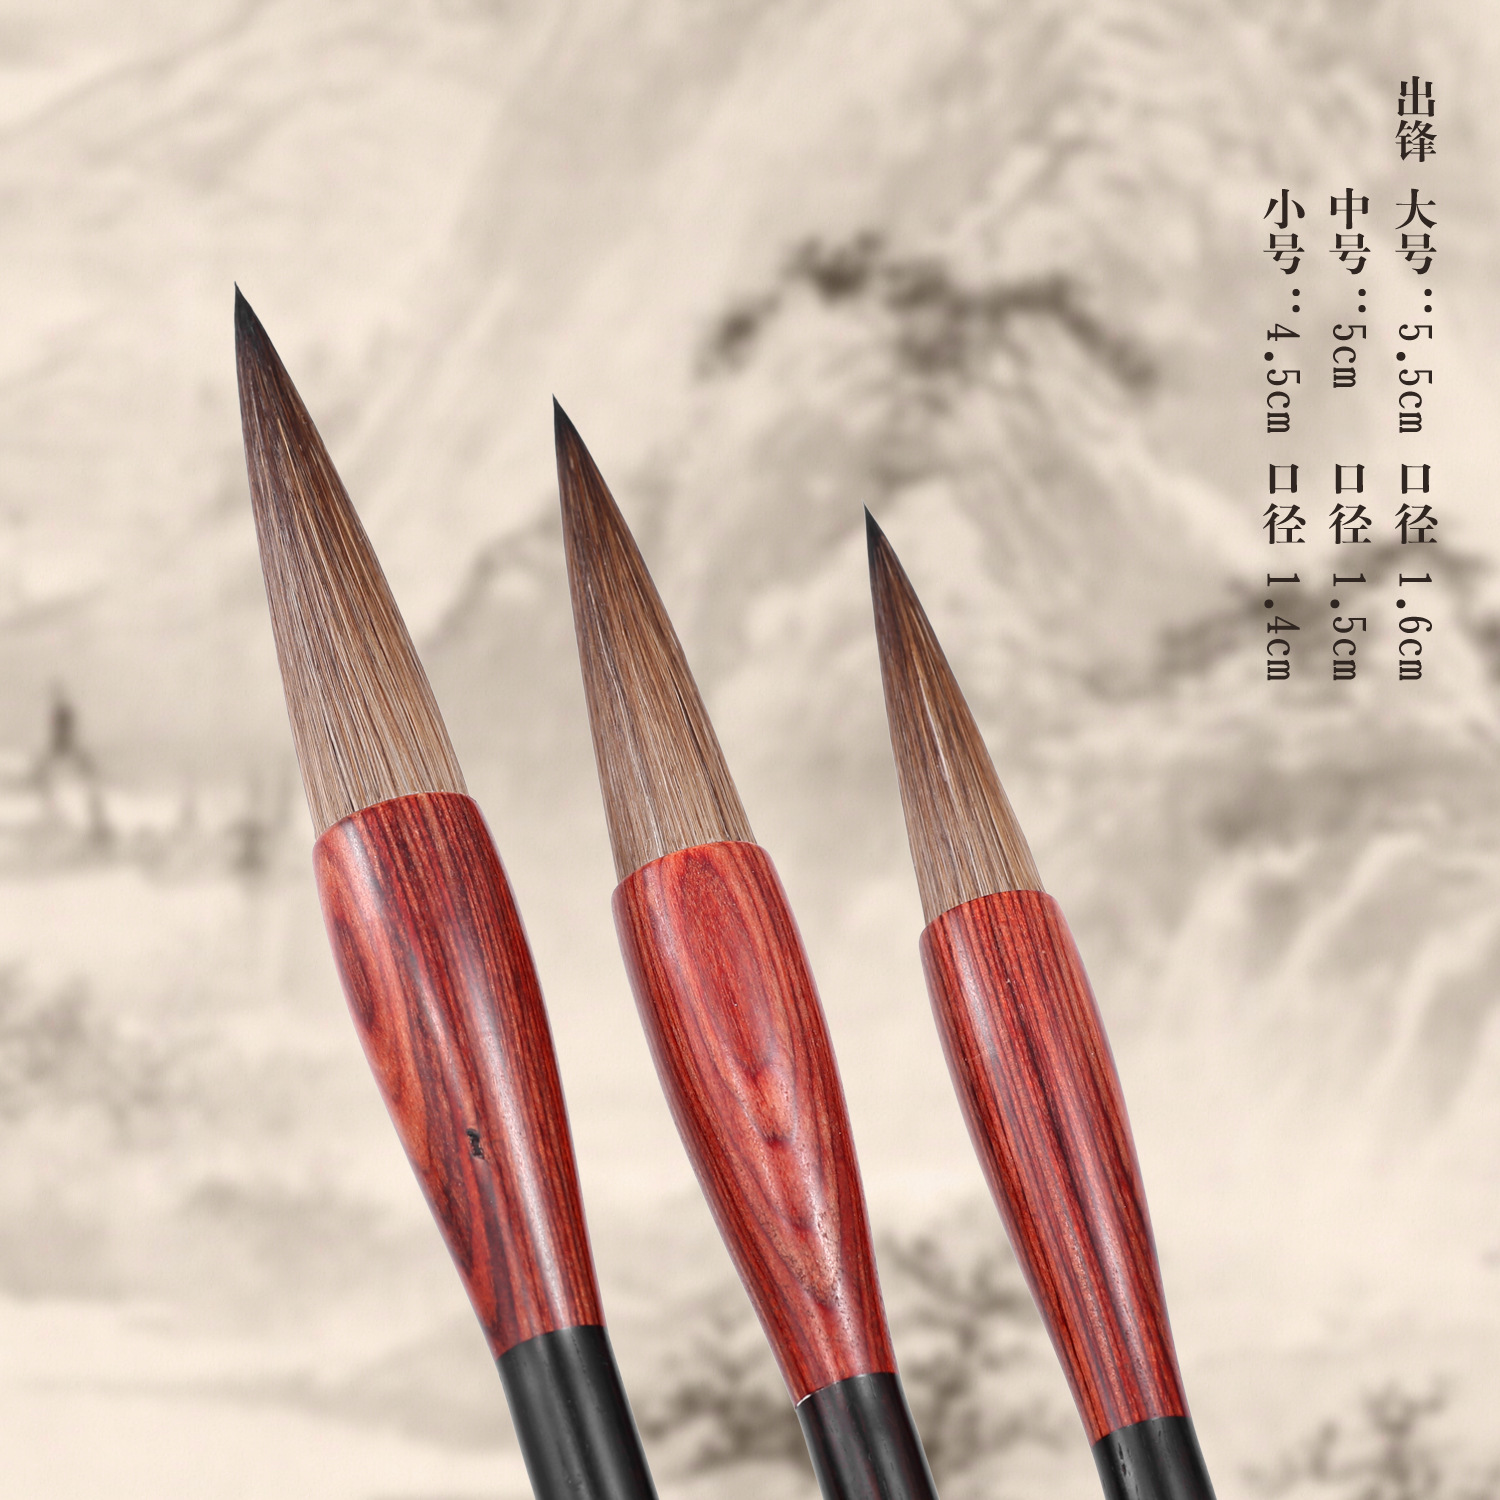 Four treasures of calligraphy brush trumpet Puppetry hard cents calligraphy painting hard hairs pen authentic chicken wings wood small leading pen rack high grade chinese brush rack four treasures of calligraphy